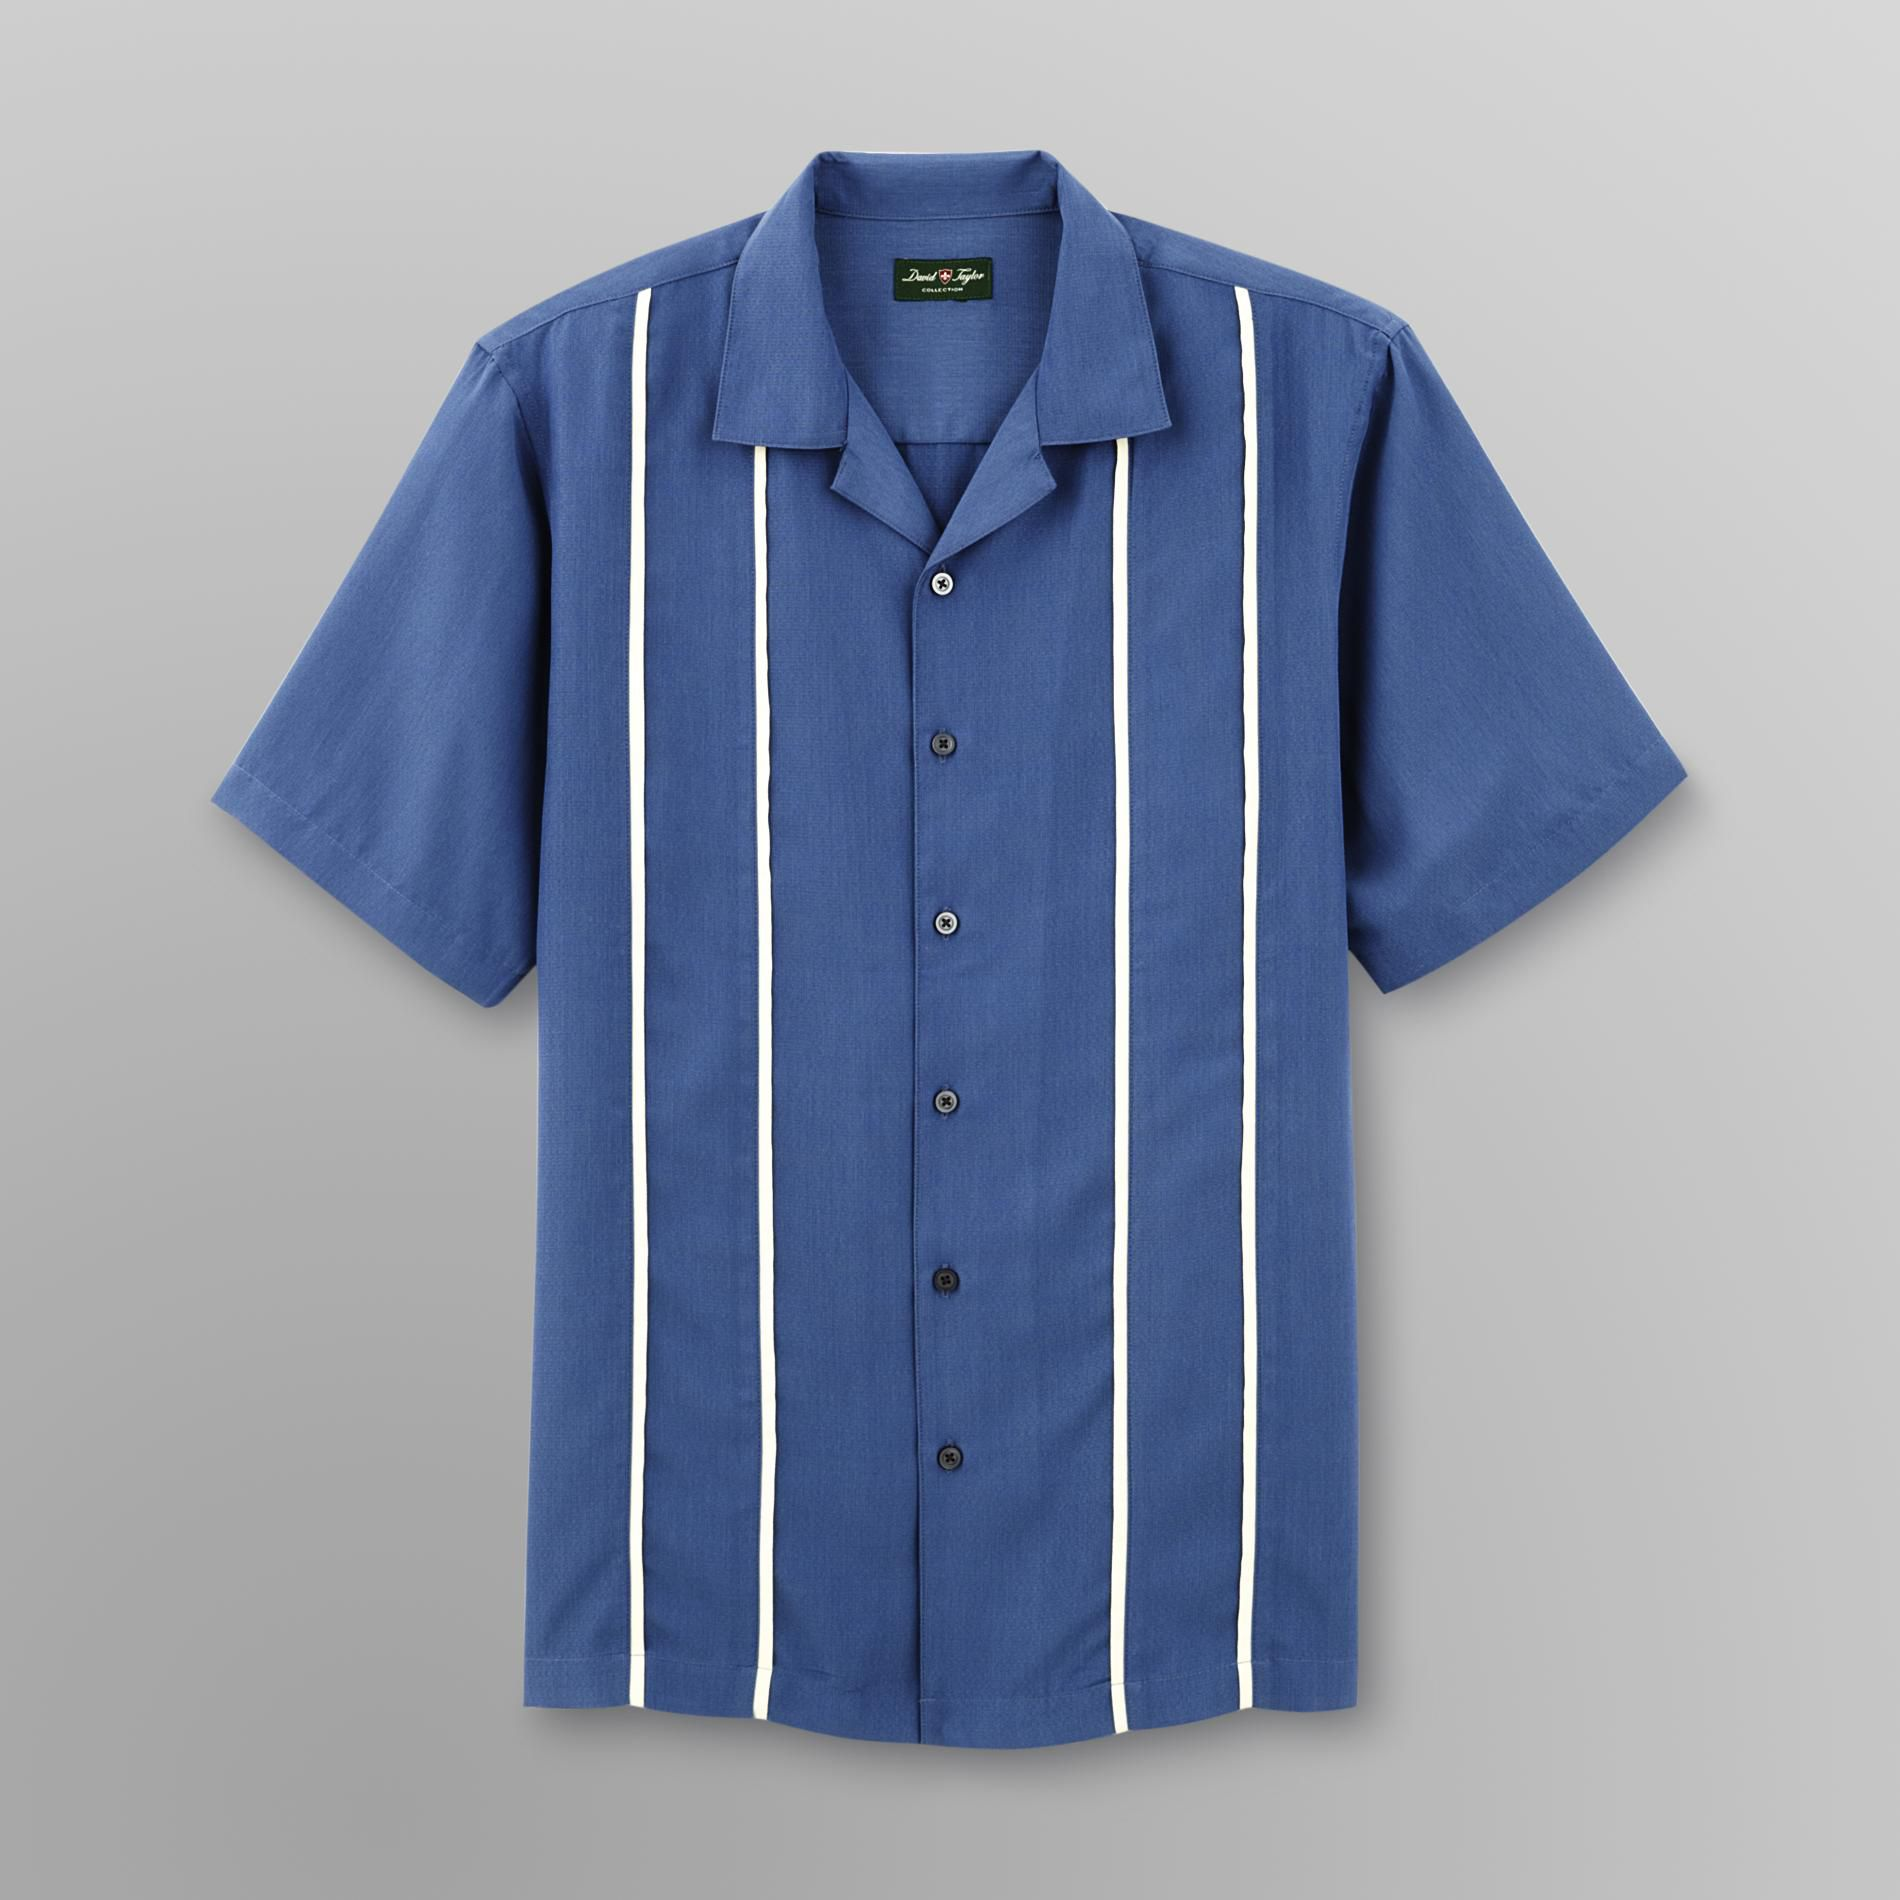 David Taylor Men's Camp Shirt at Kmart.com